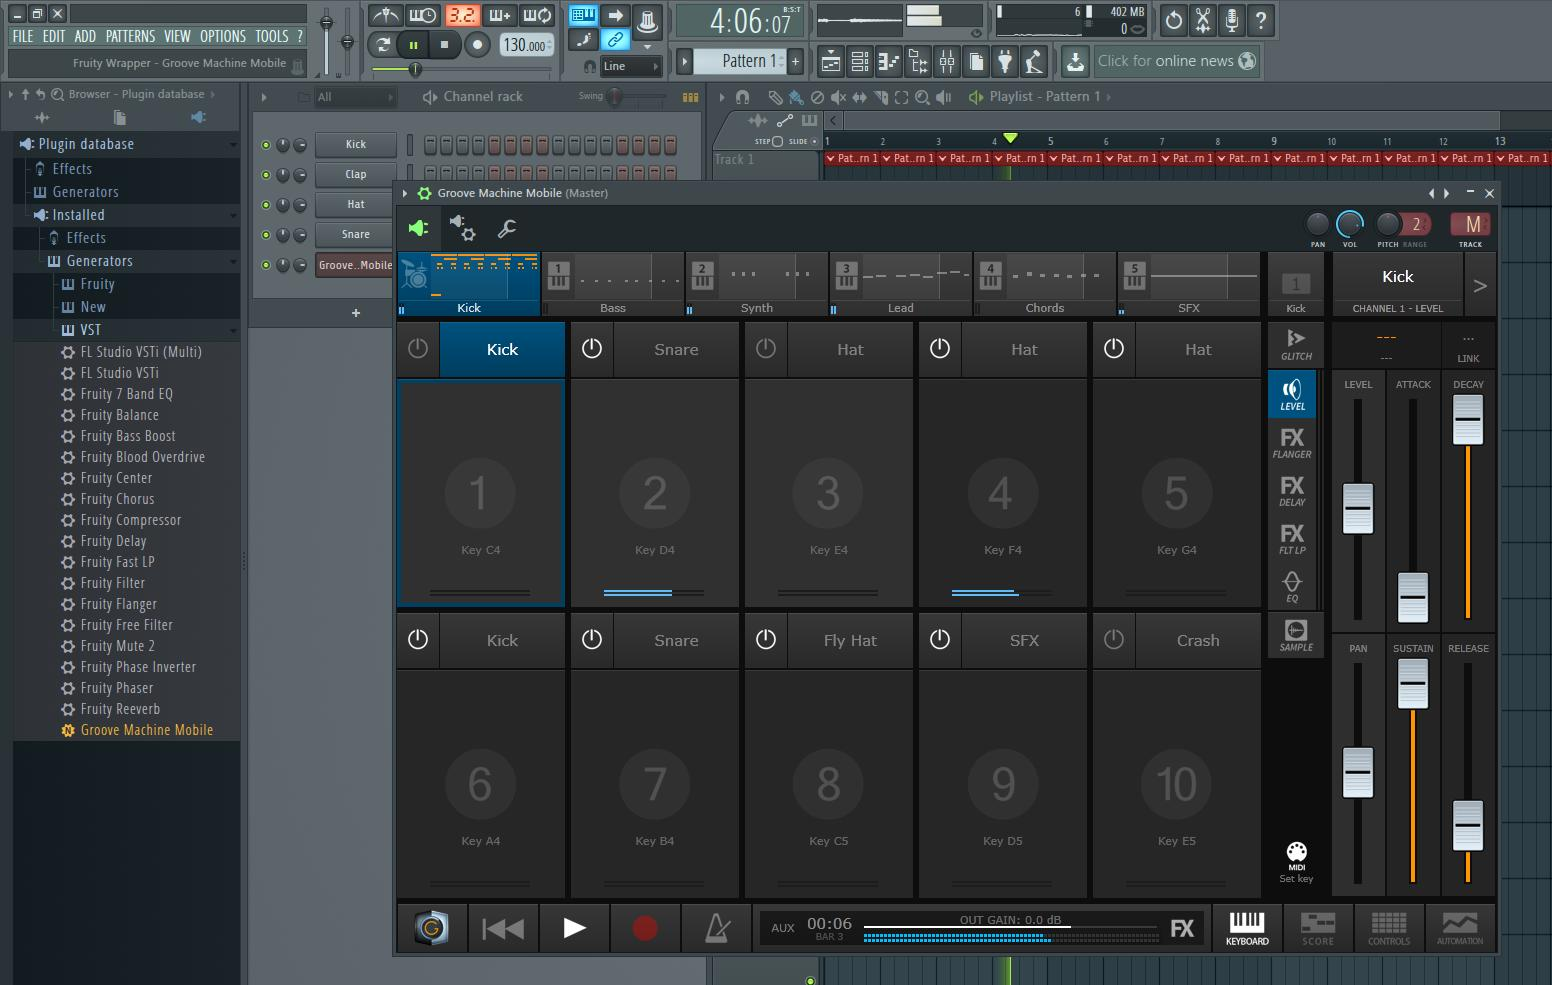 Virtual Drum Machine Sampler : image line updates groove machine mobile app and releases beta vst version audiofanzine ~ Vivirlamusica.com Haus und Dekorationen